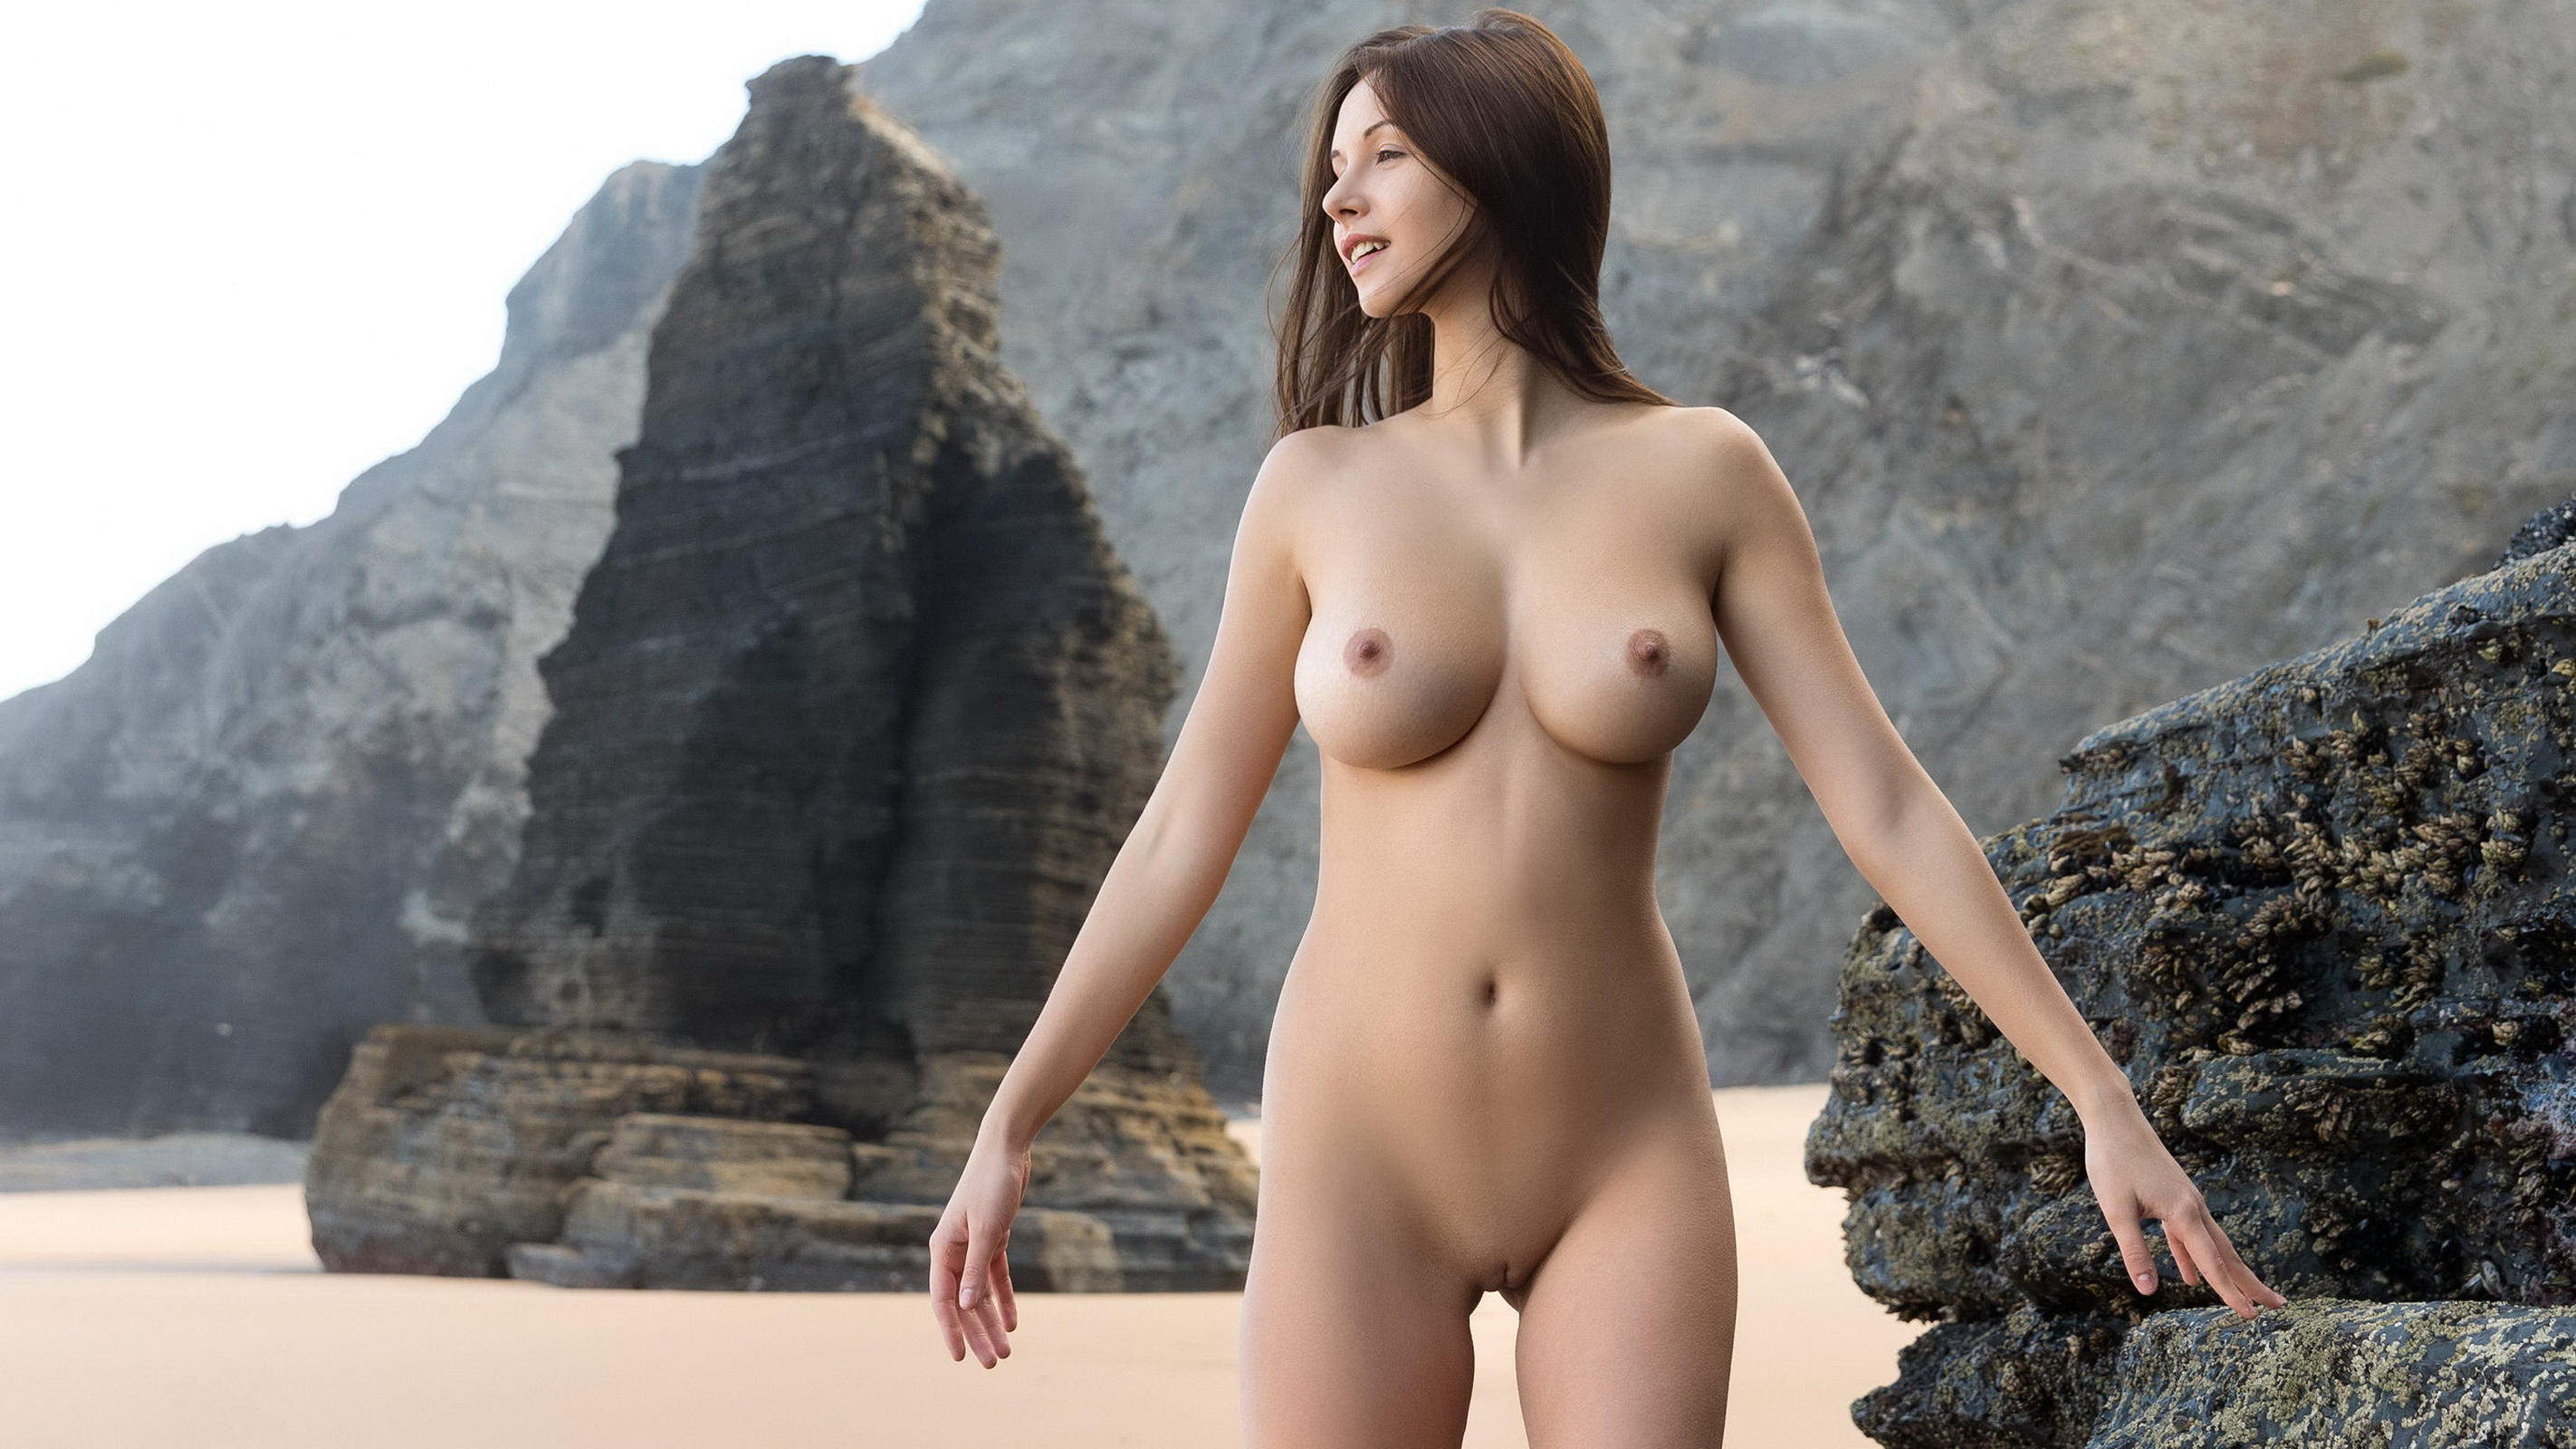 Shemale Naked Free Download Wallpaper Hentia Pics